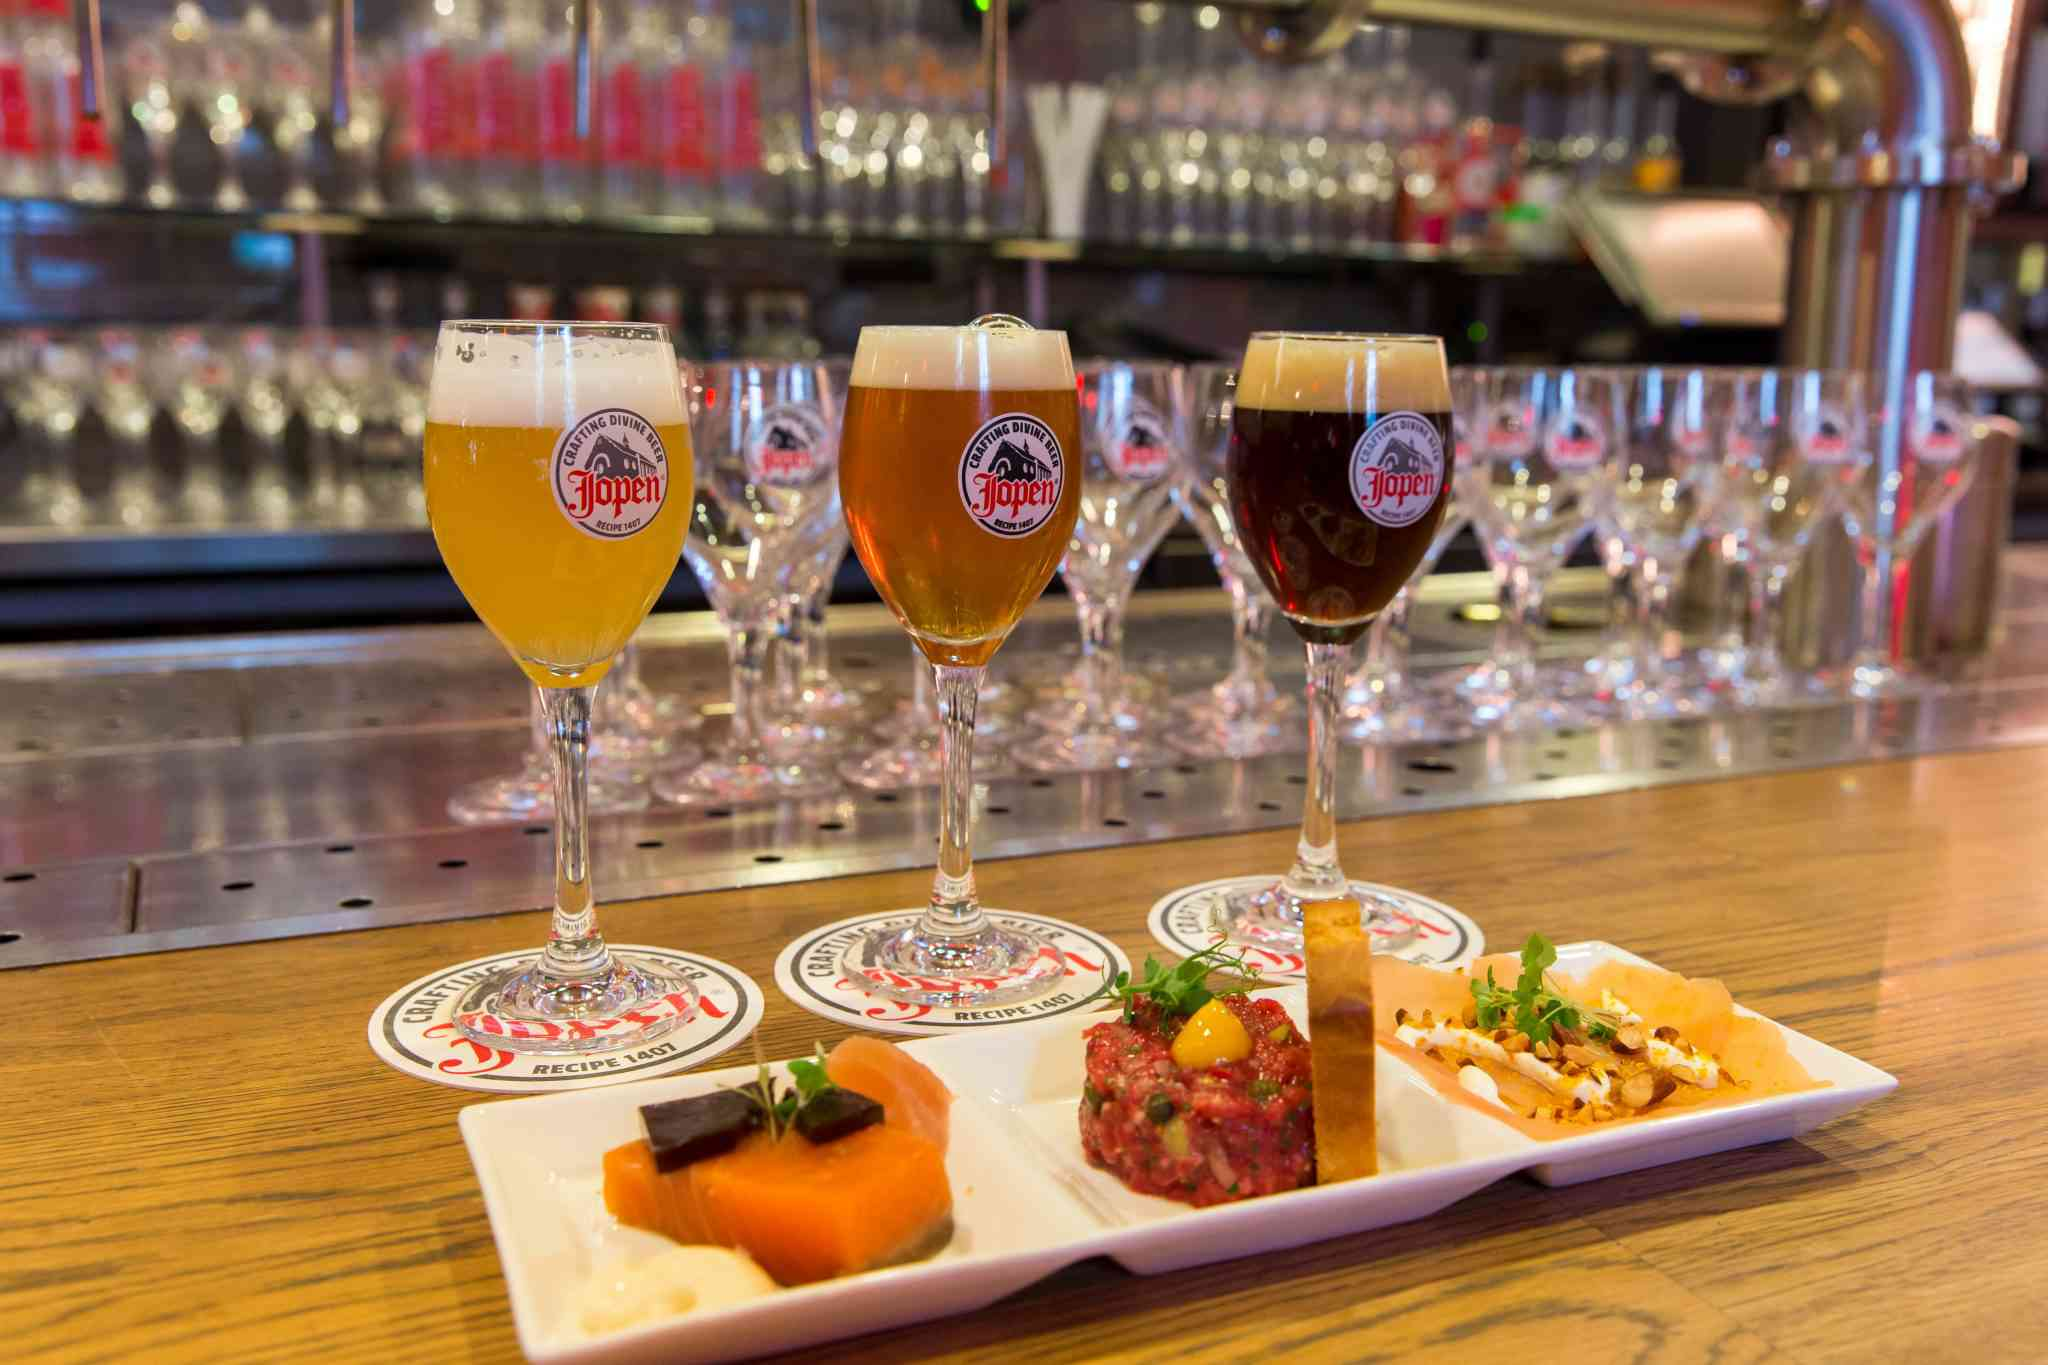 Three amuse bouches infront of three glasses of beer at Jopenkerk Haarlem